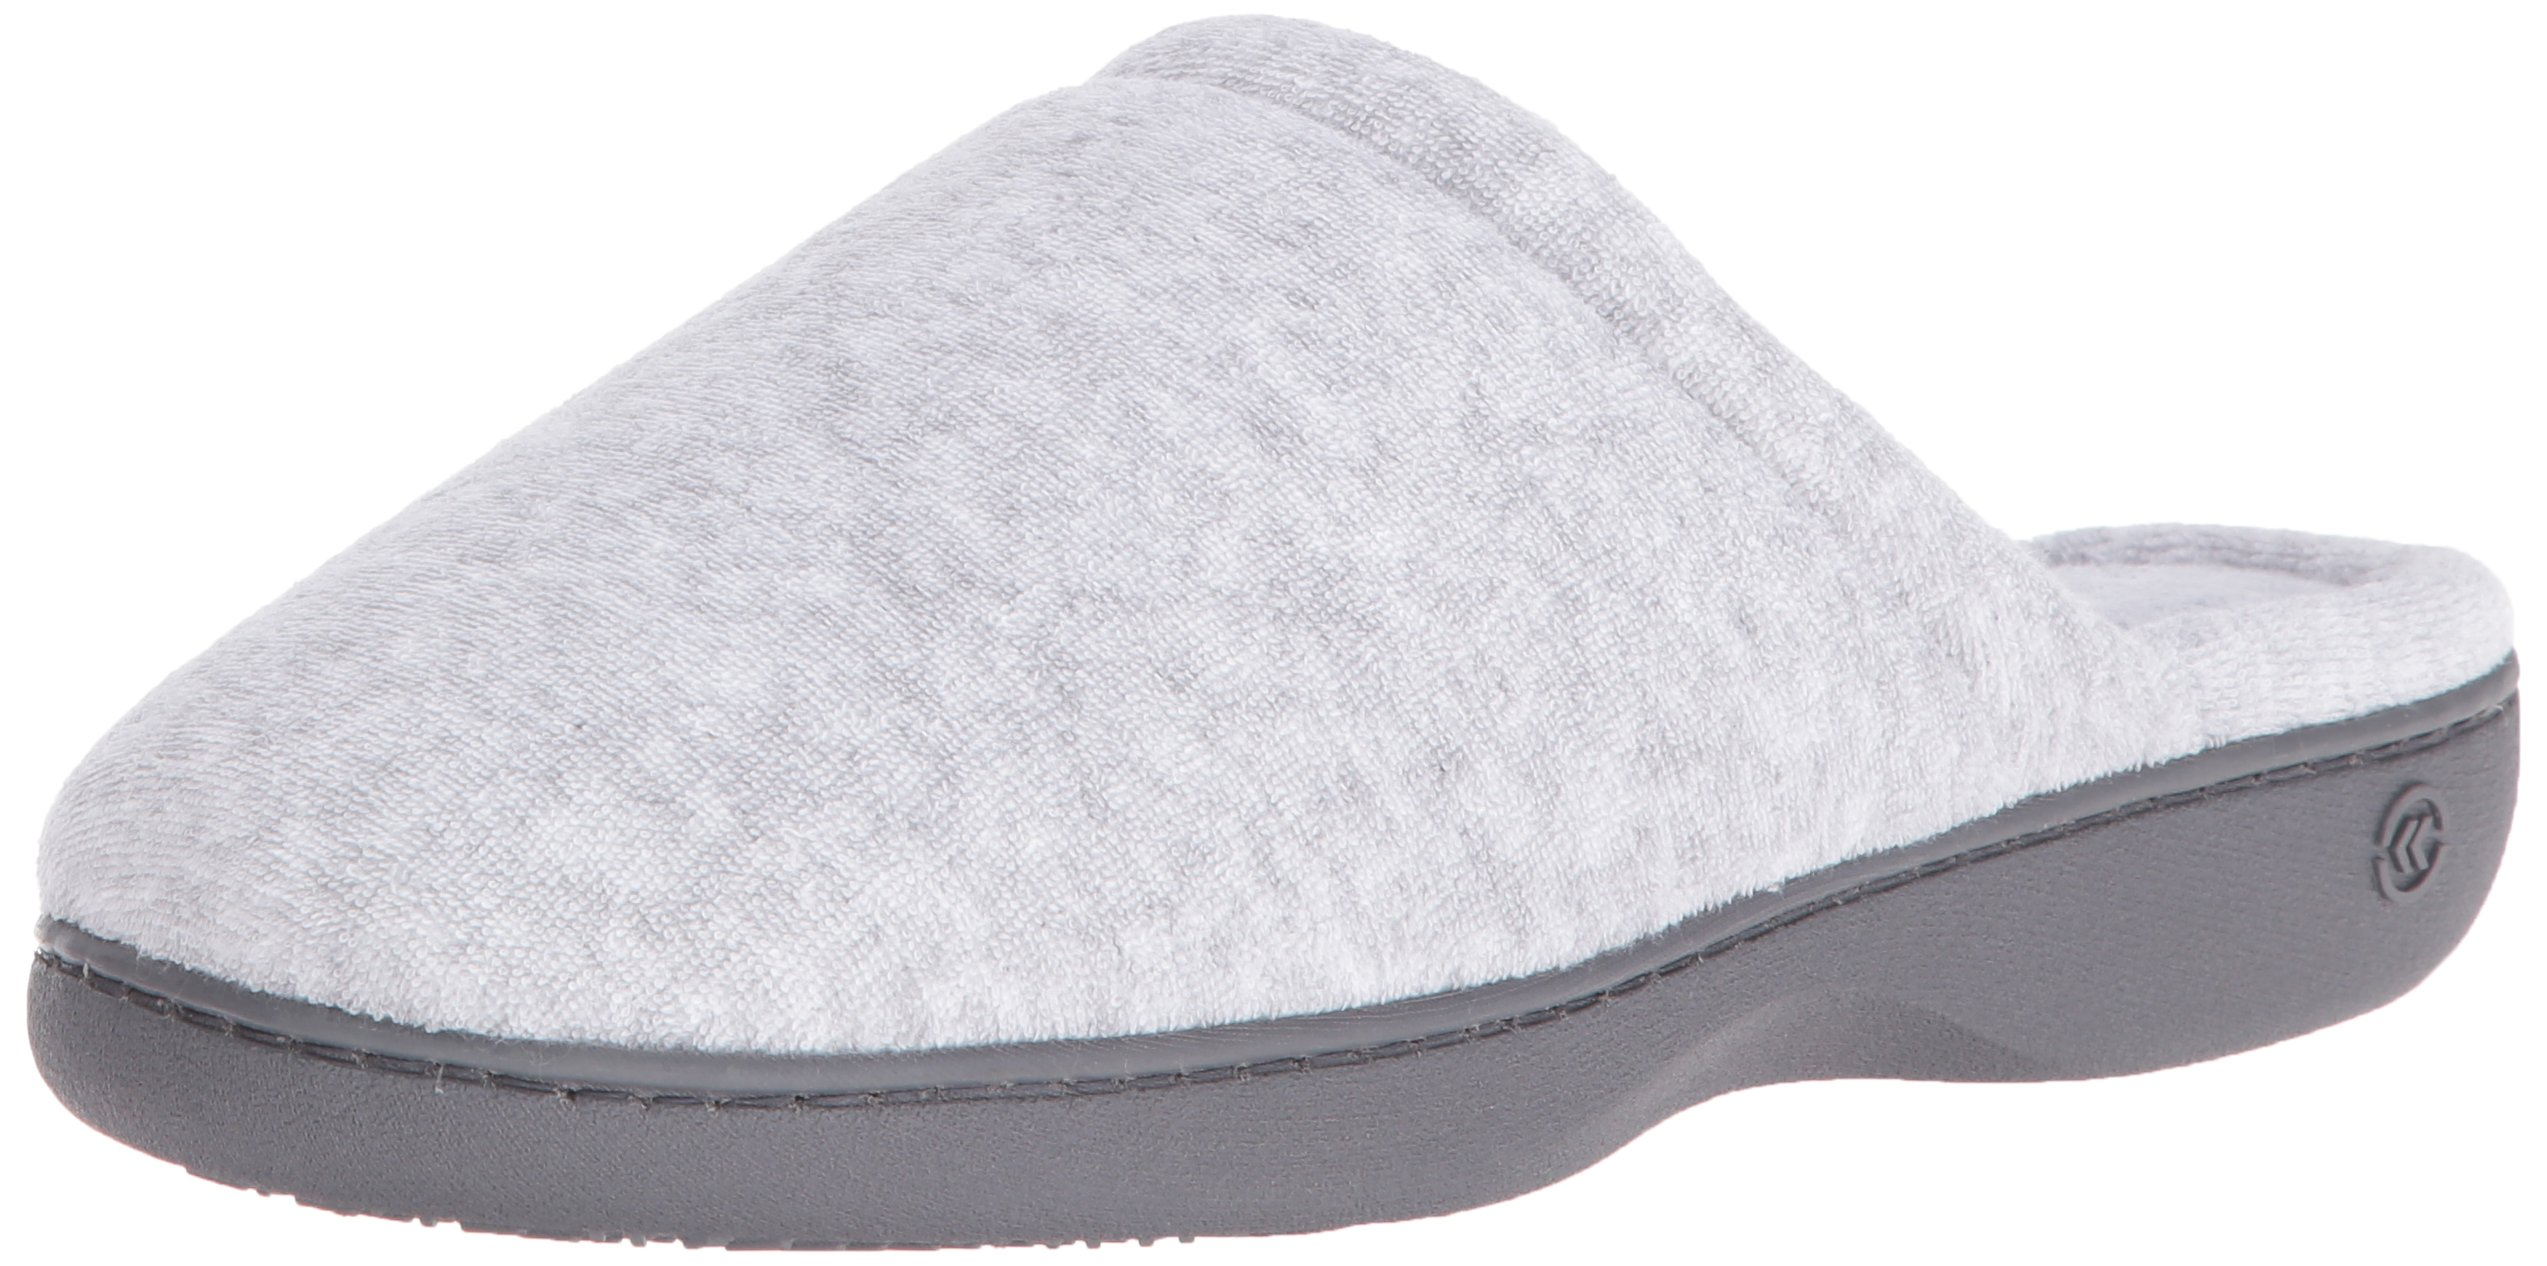 ISOTONER Women's Classic Terry Clog Slippers Slip on, Heather Grey, Large / 8.5-9 Regular US by ISOTONER